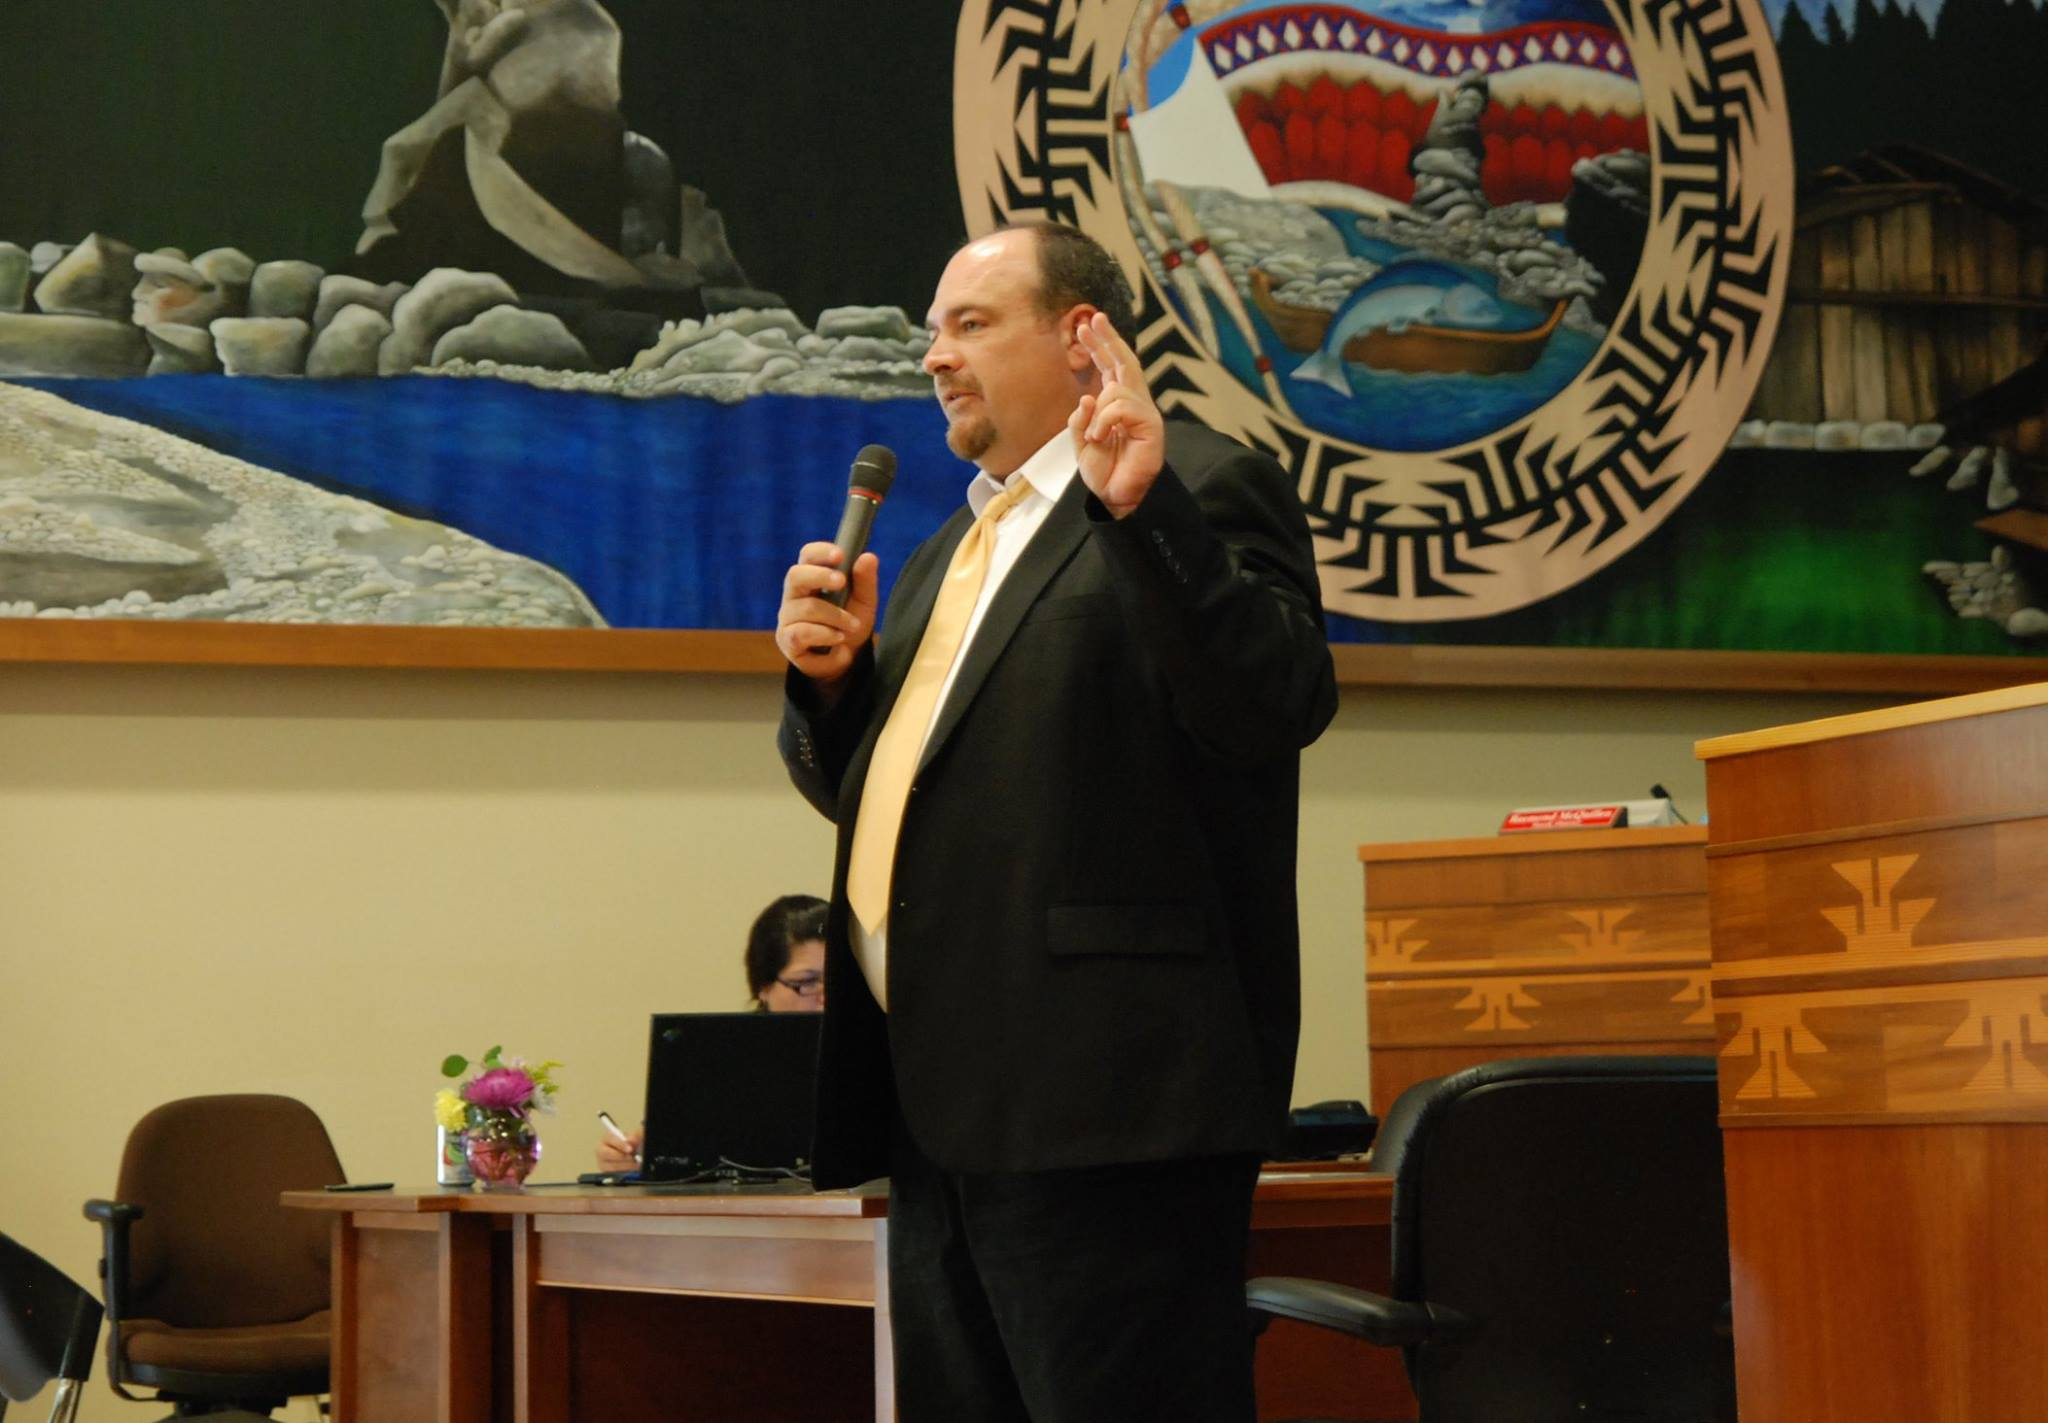 Yurok Tribe: Mourning the passing of 'visionary' Troy Fletcher